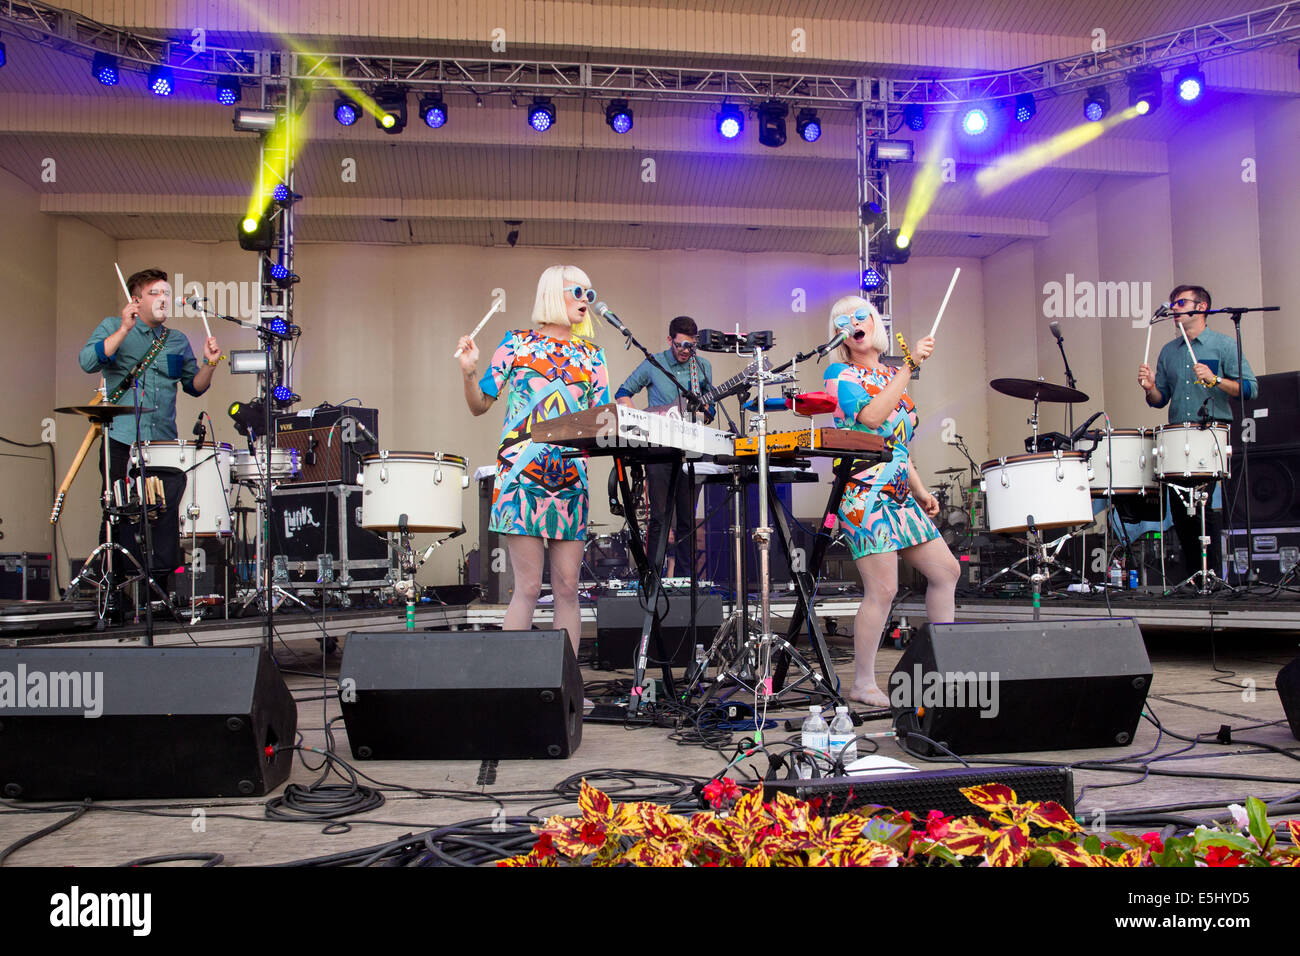 Jan. 5, 2012 - Chicago, Illinois, U.S - Lucius perform live at the 2014 Lollapalooza Music Festival in Chicago, - Stock Image